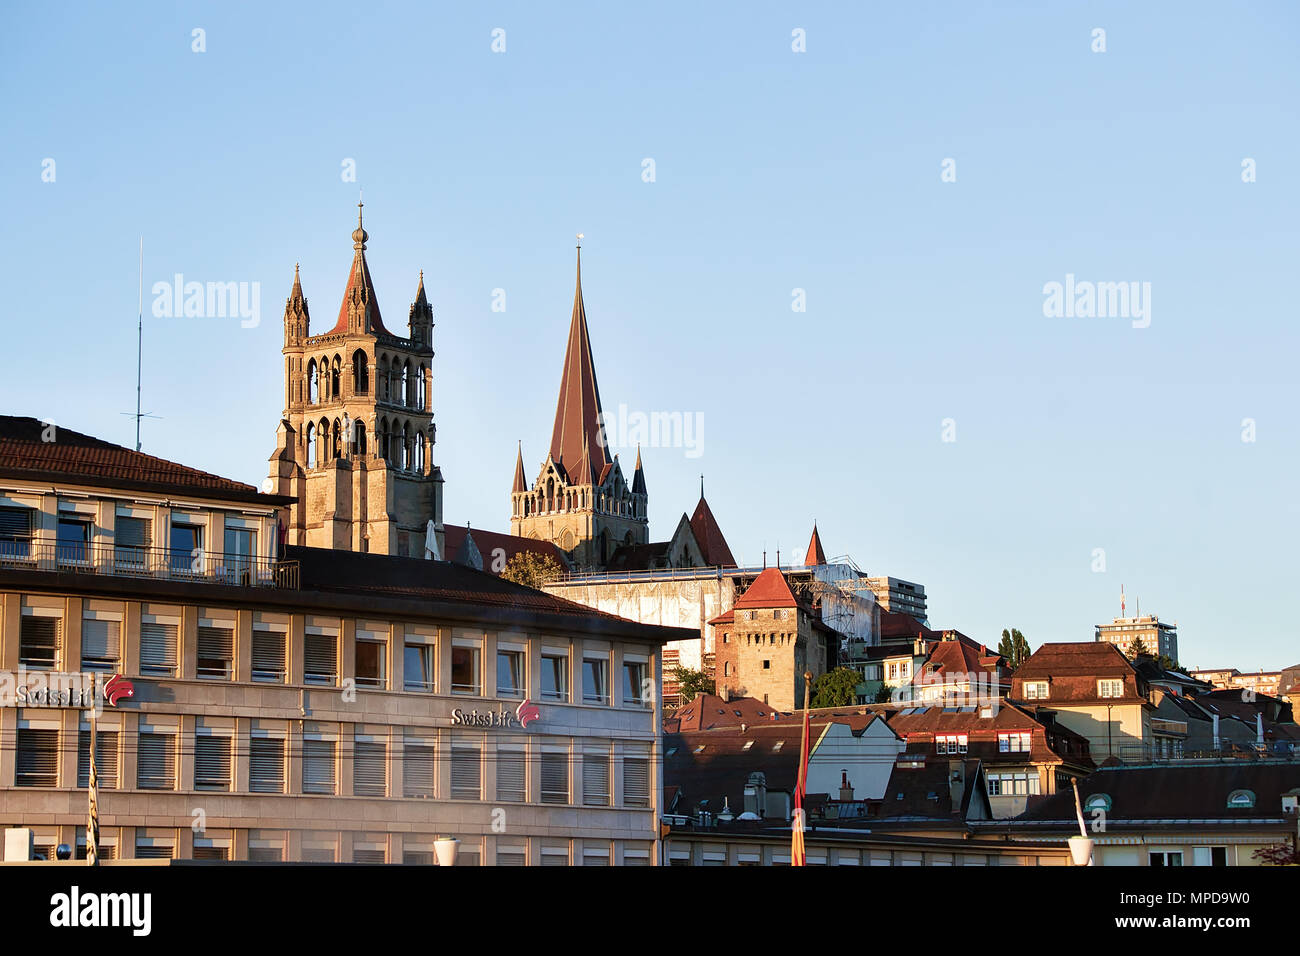 Lausanne, Switzerland - August 26, 2018: Lausanne Cathedral of Notre Dame in Lausanne city center, Switzerland. Seen from Le Flon district - Stock Image